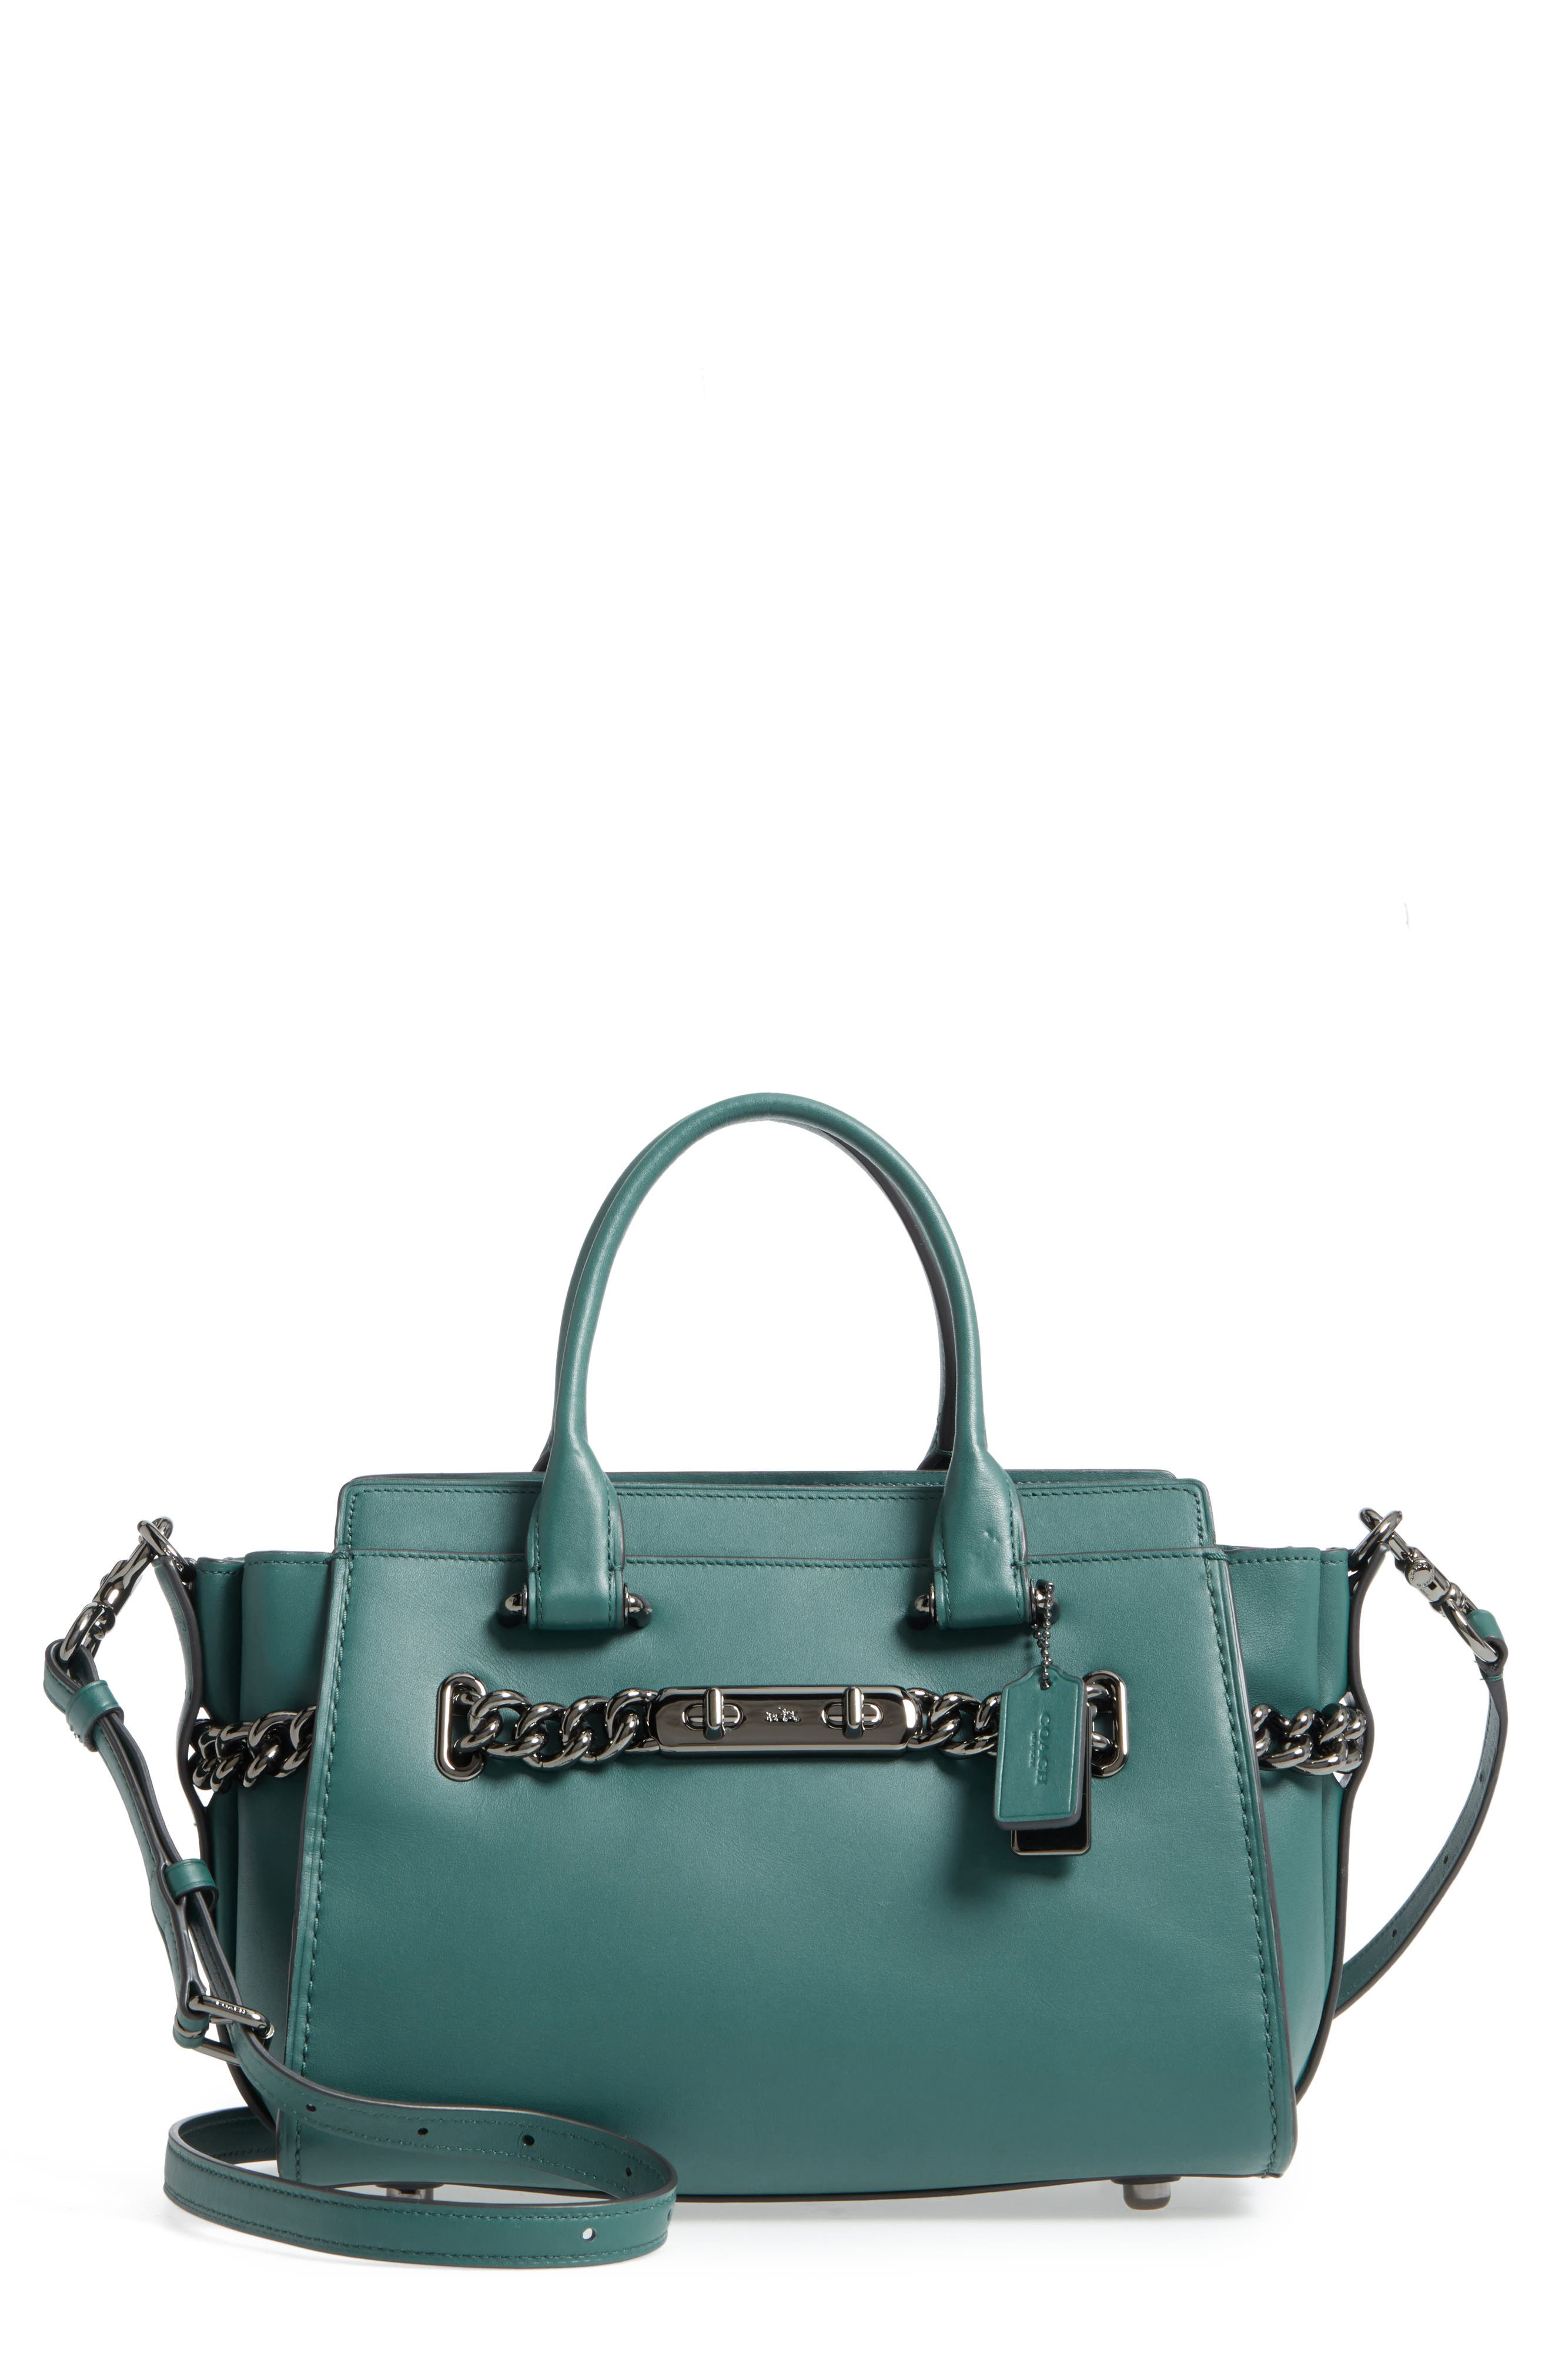 Alternate Image 1 Selected - COACH ID Bracelet Swagger 27 Calfskin Leather Satchel